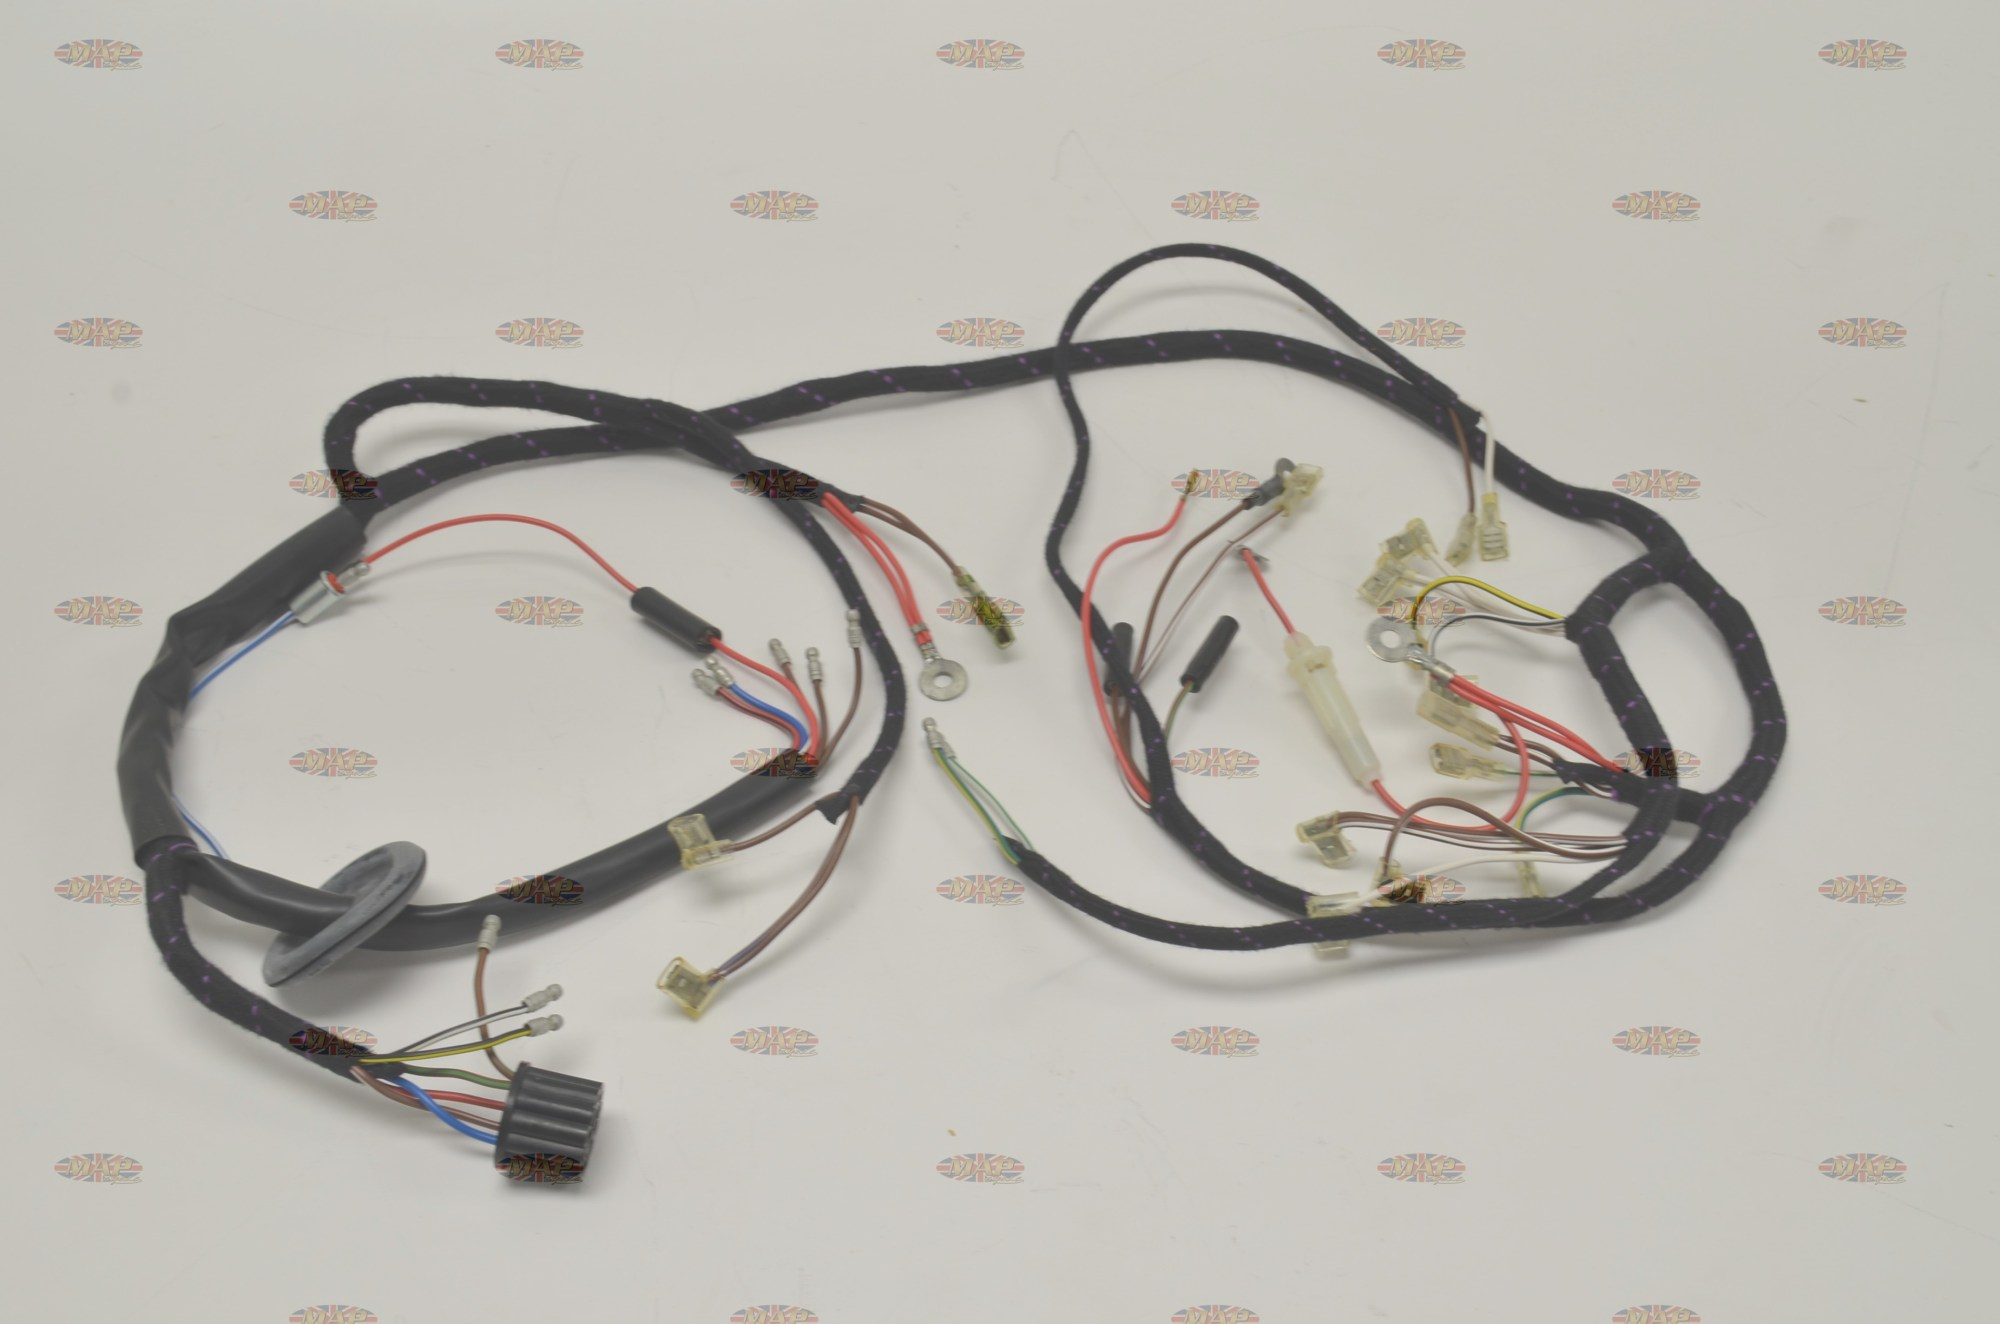 hight resolution of norton 1968 70 p11 650 mercury quality uk made wiring harness rh mapcycle com 71 norton